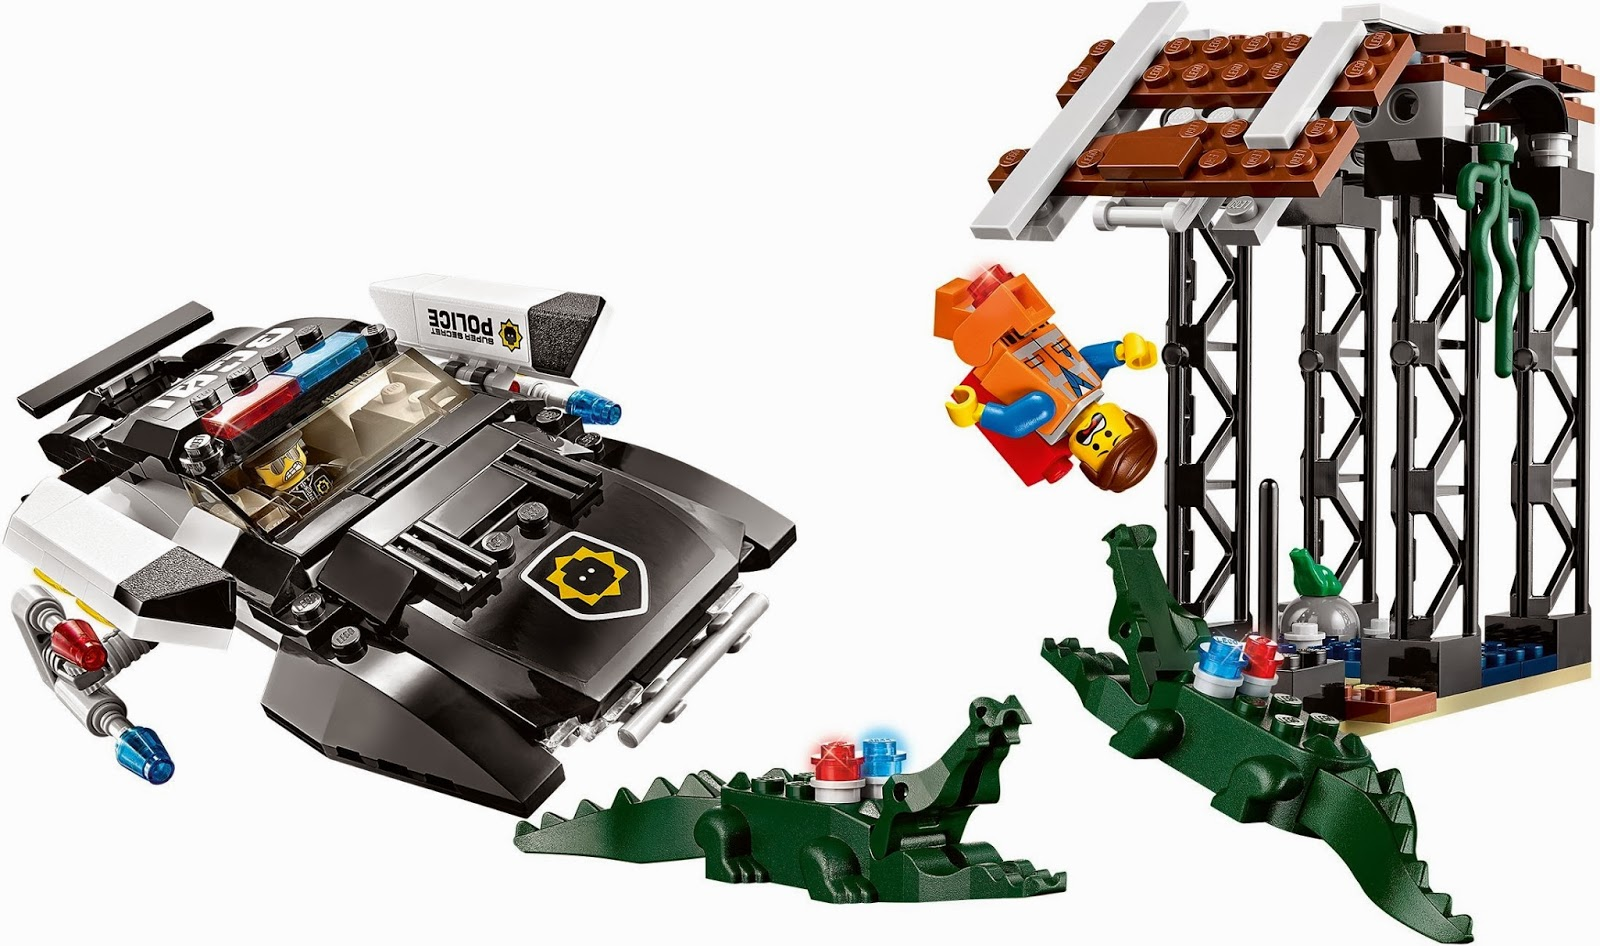 Buried in Bricks: The LEGO Movie sets now available!